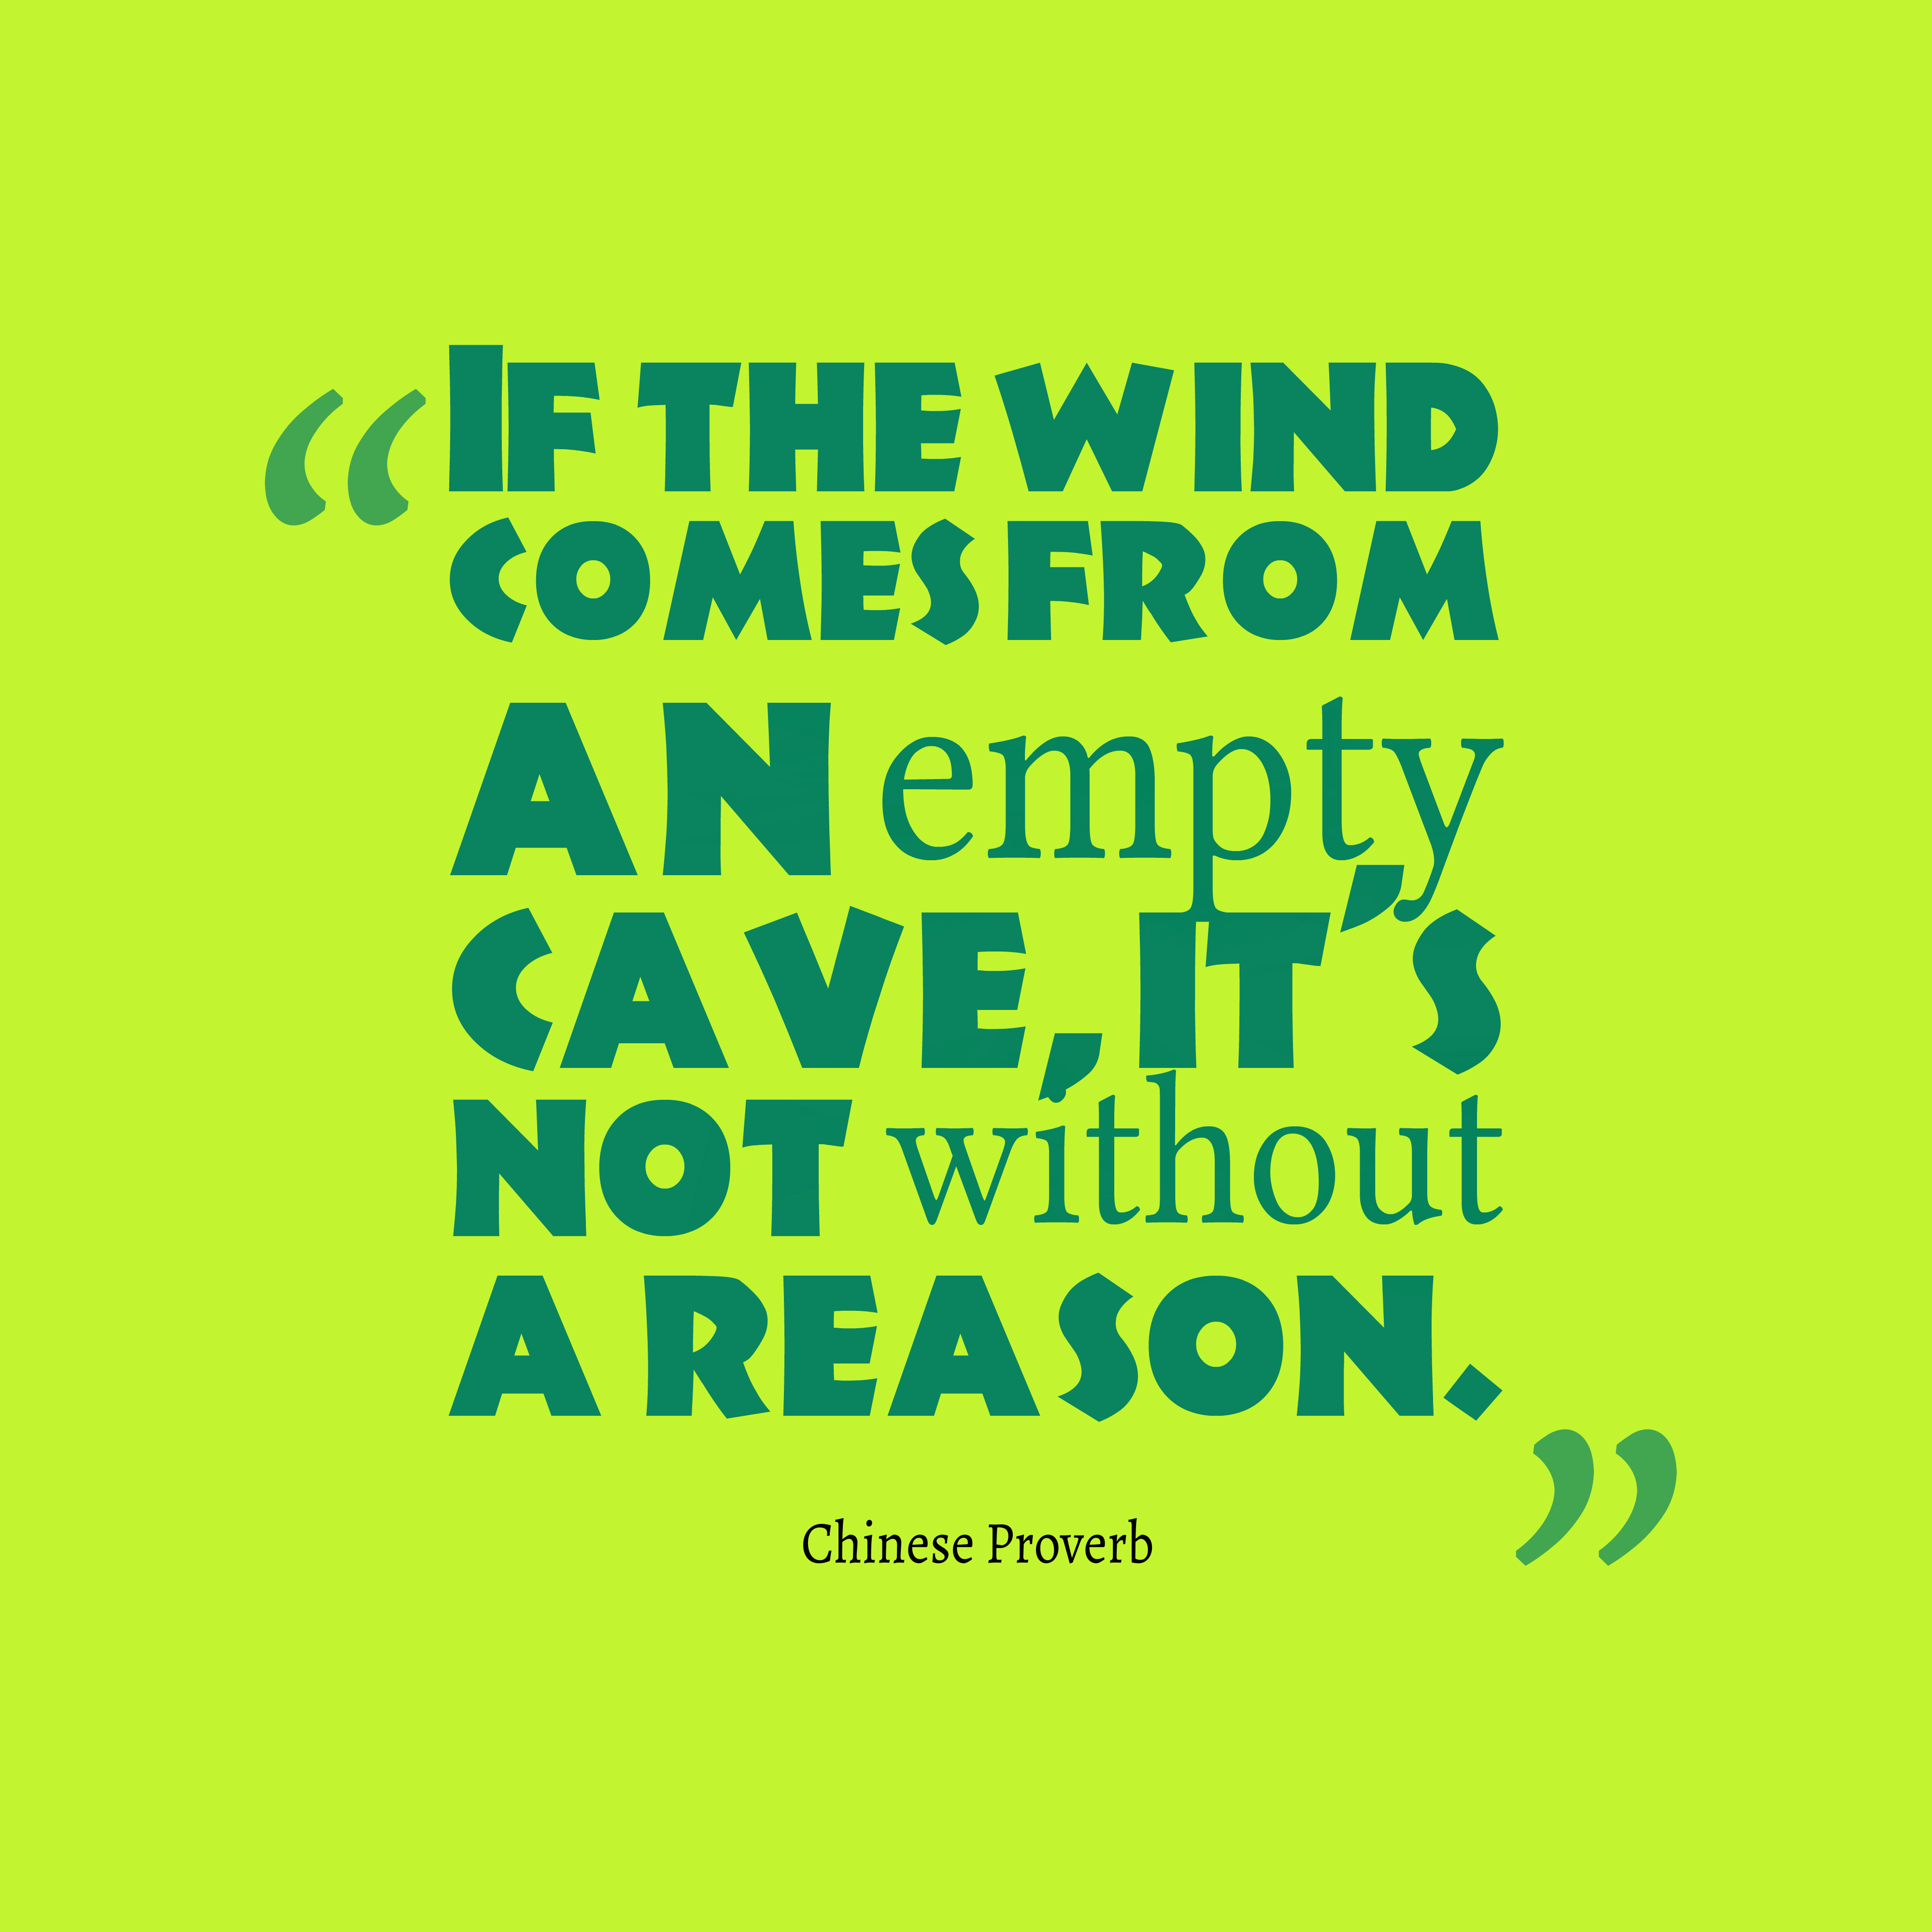 Chinese Quotes: Chinese Wisdom About Reason